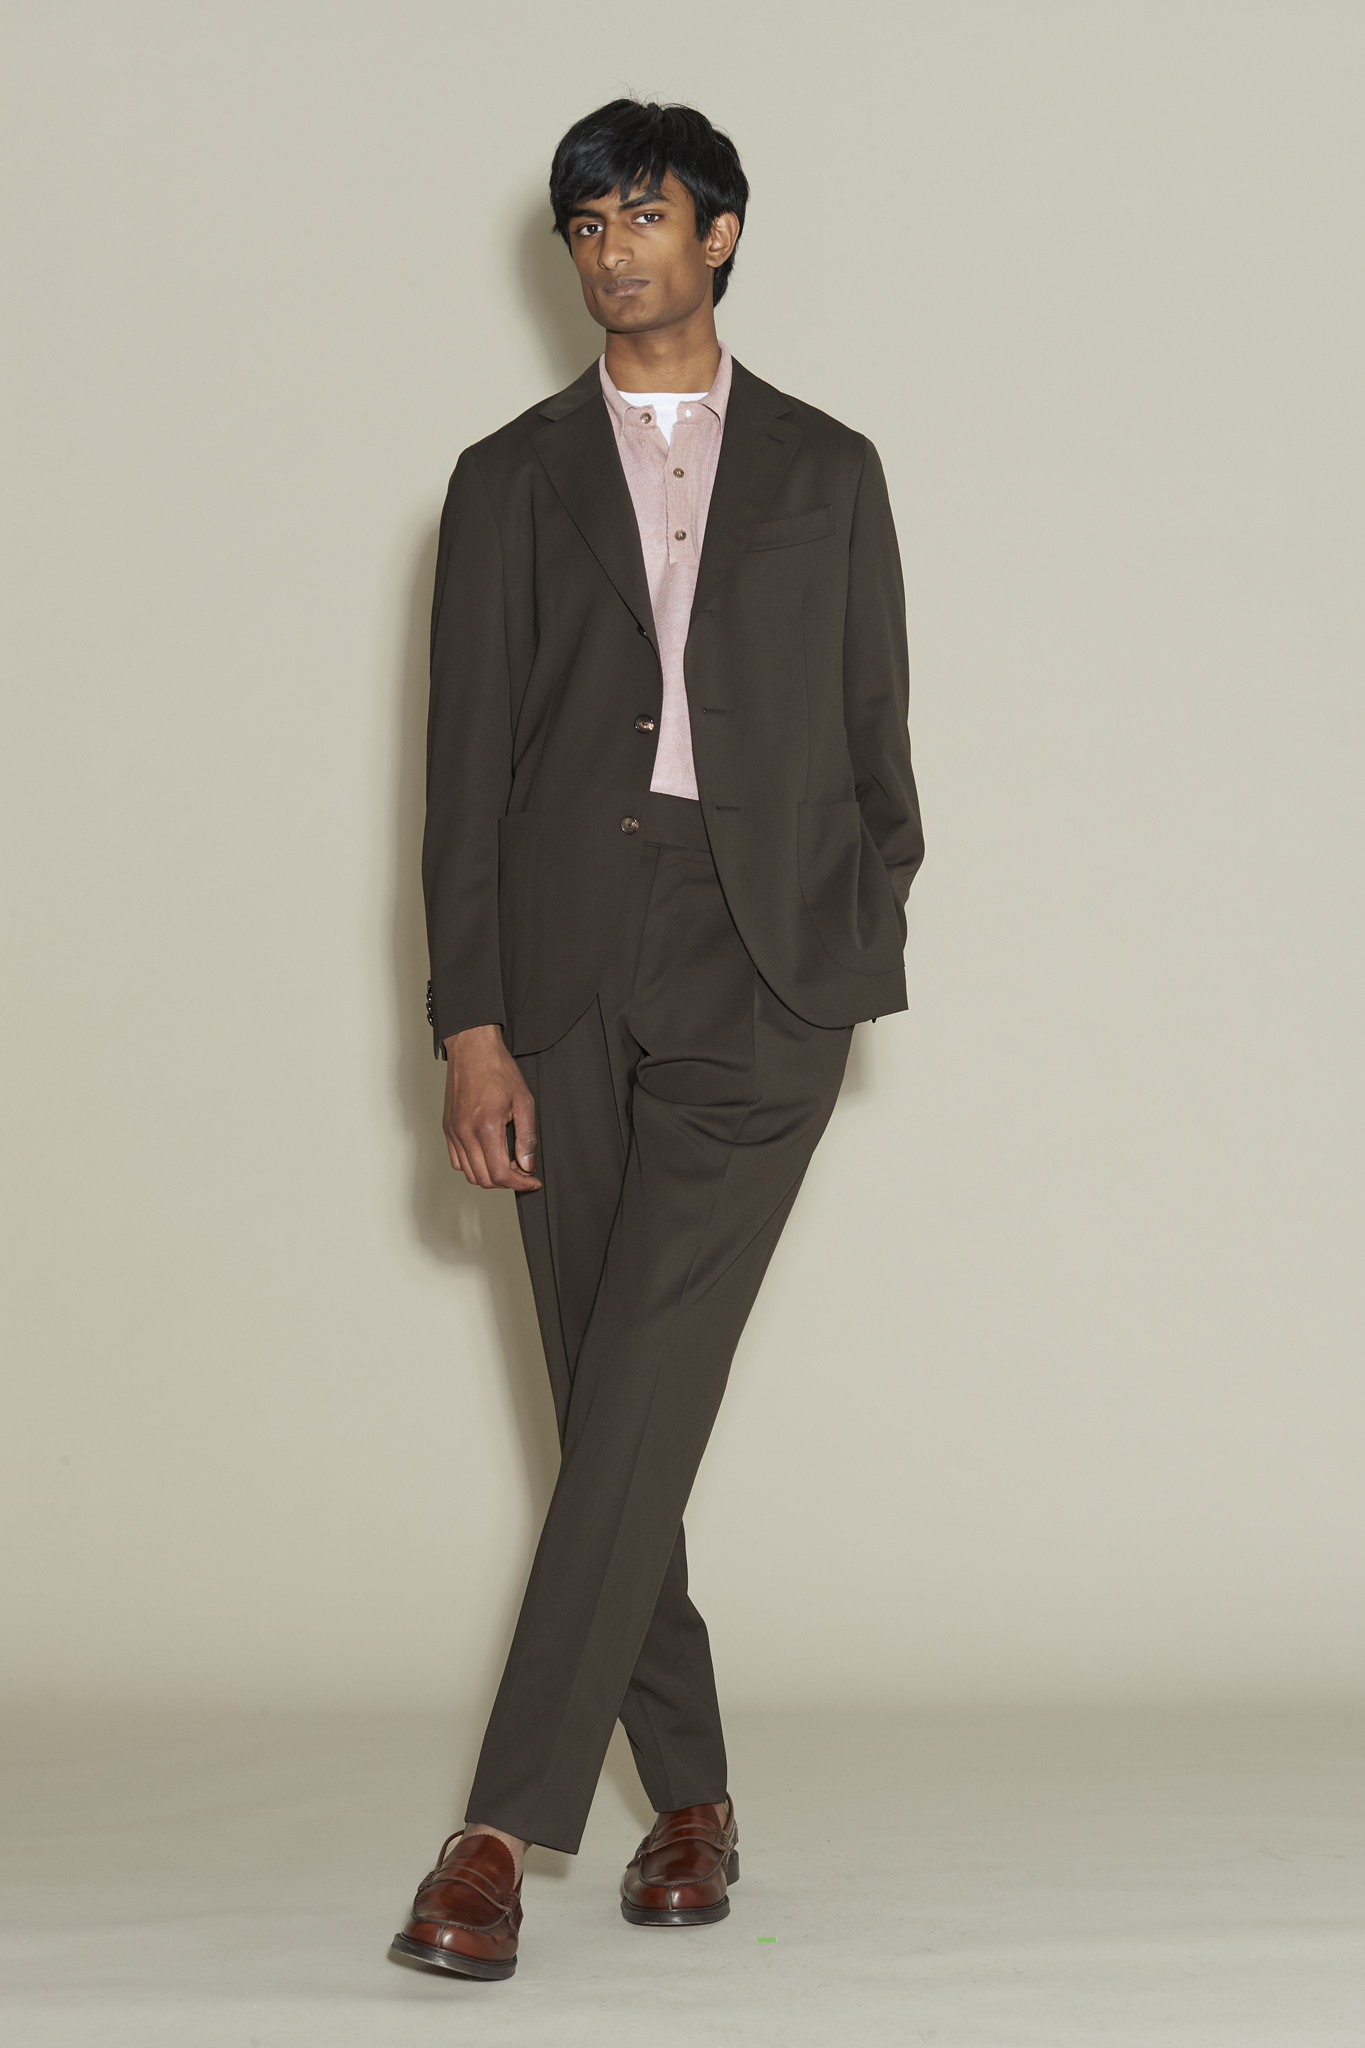 Caruso Men's Spring 2020